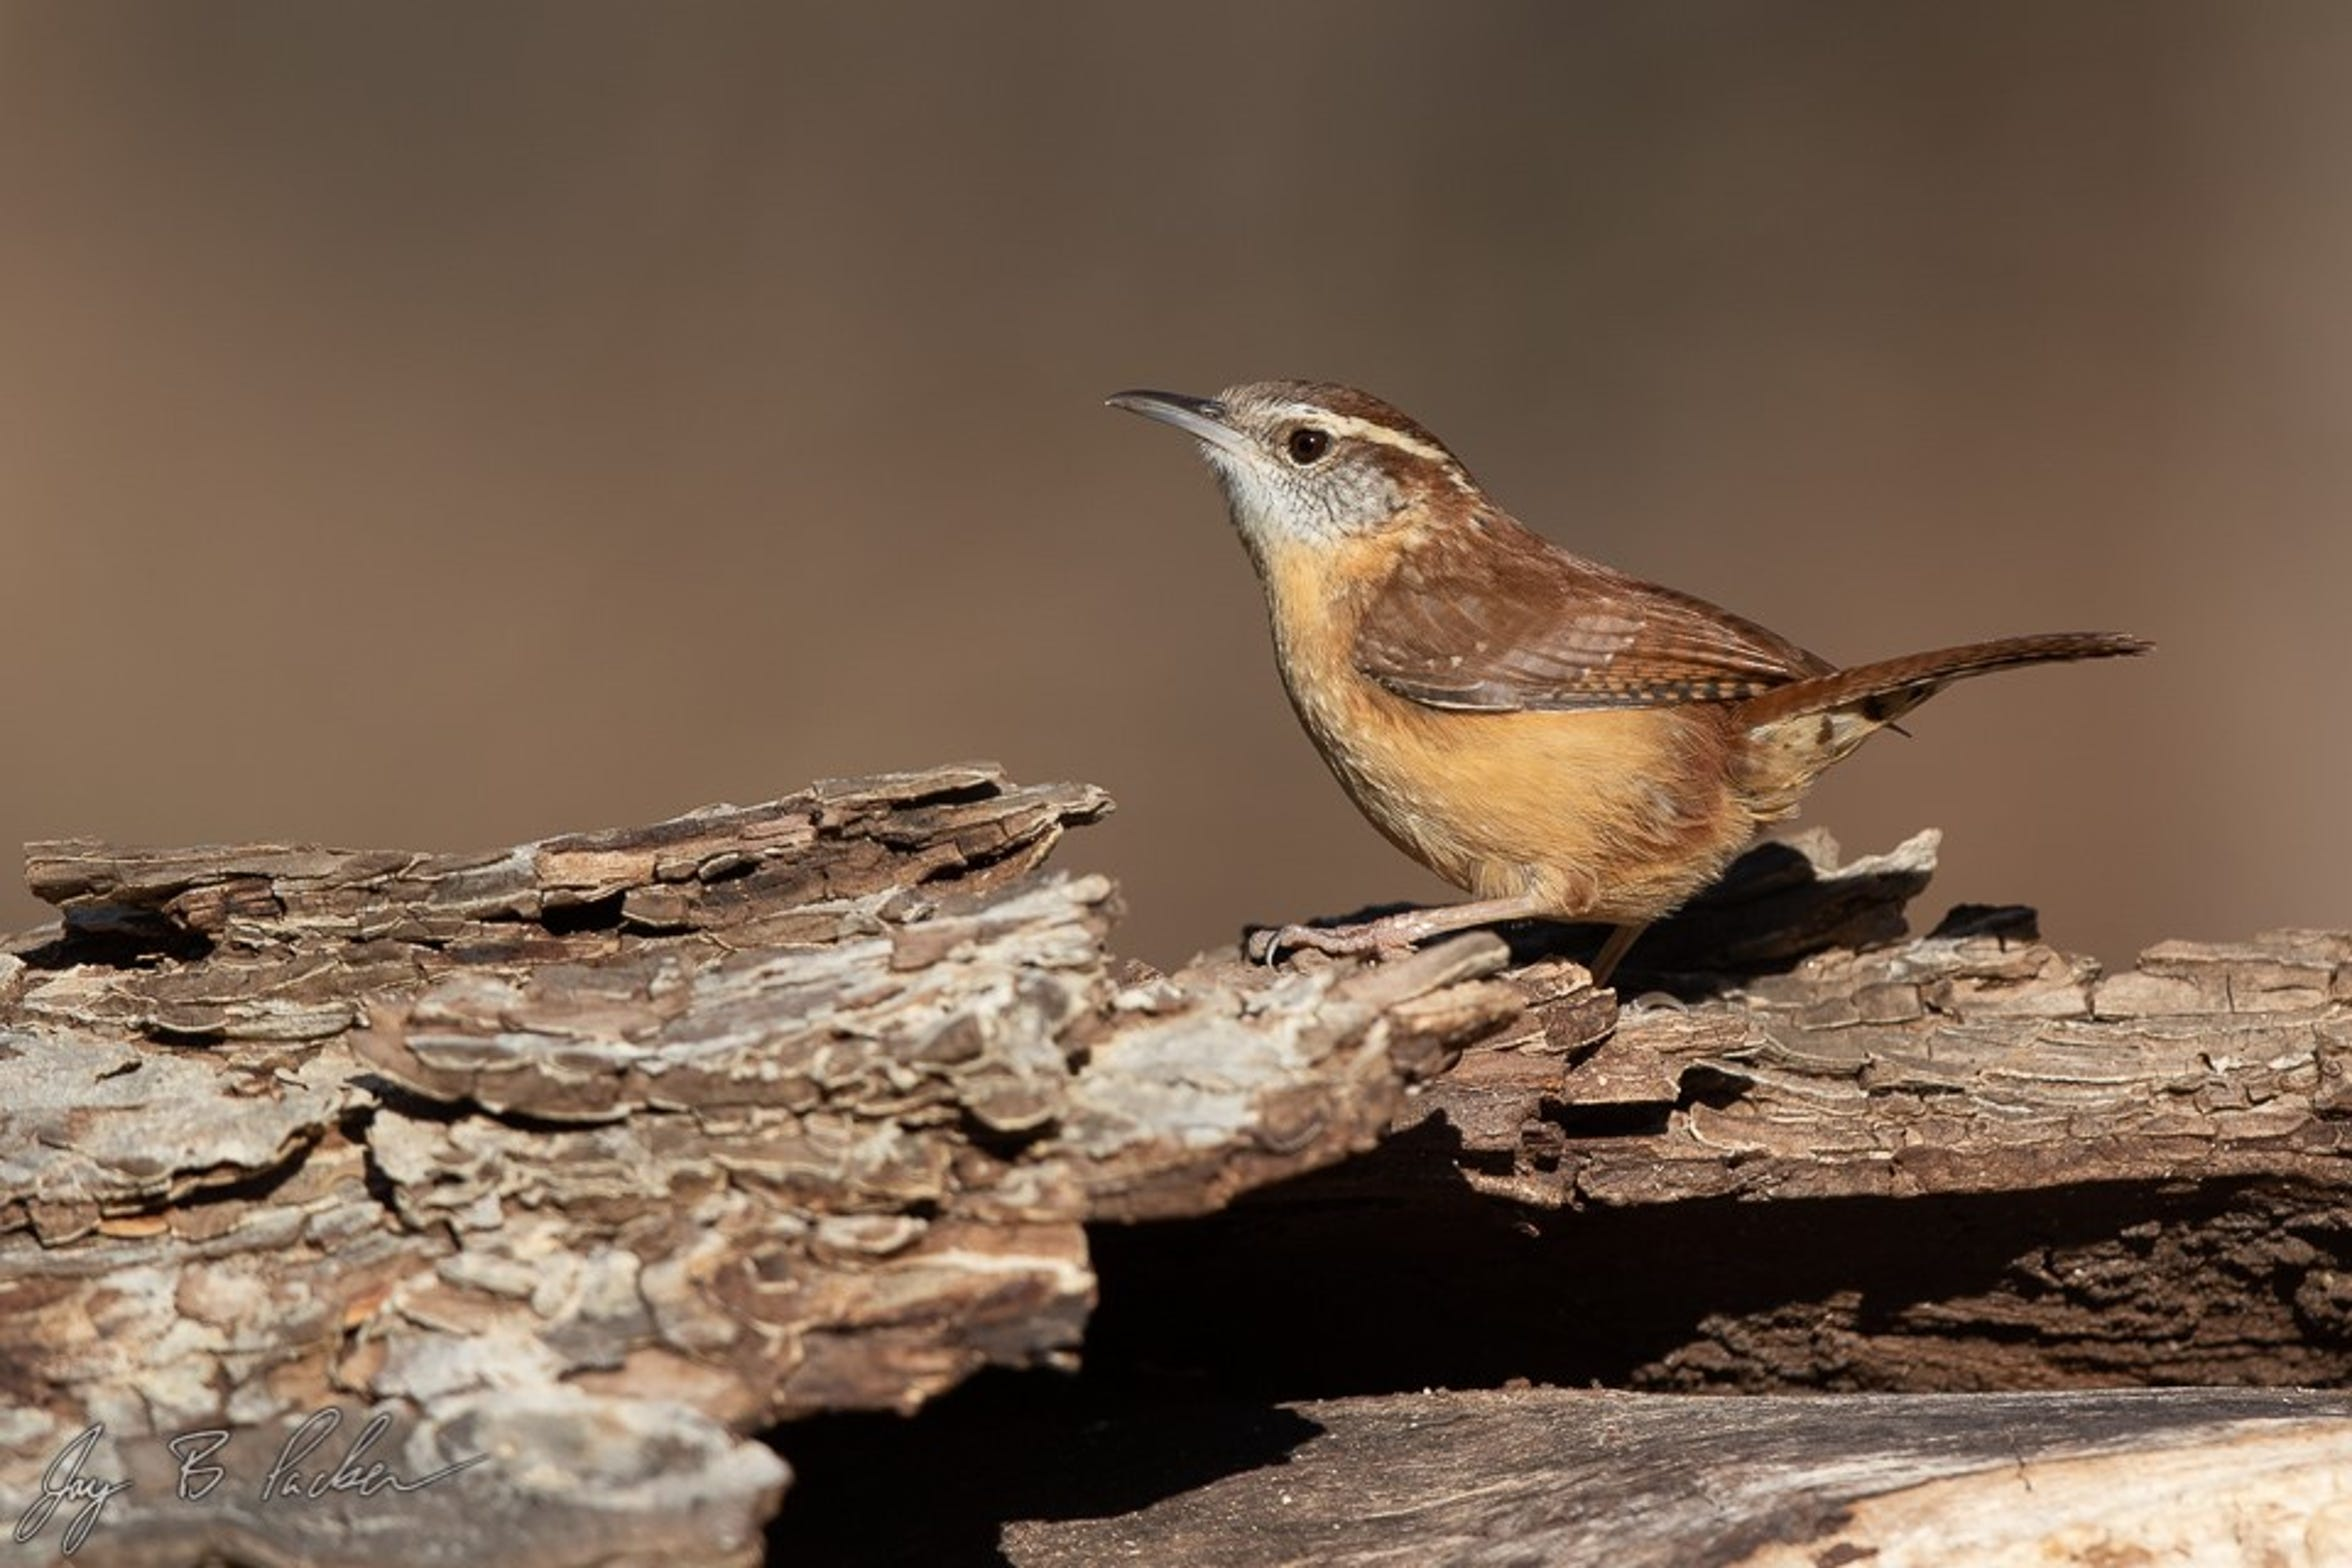 A  Carolina Wren found at Abilene State Park. A common bird that's heard more often than seen.